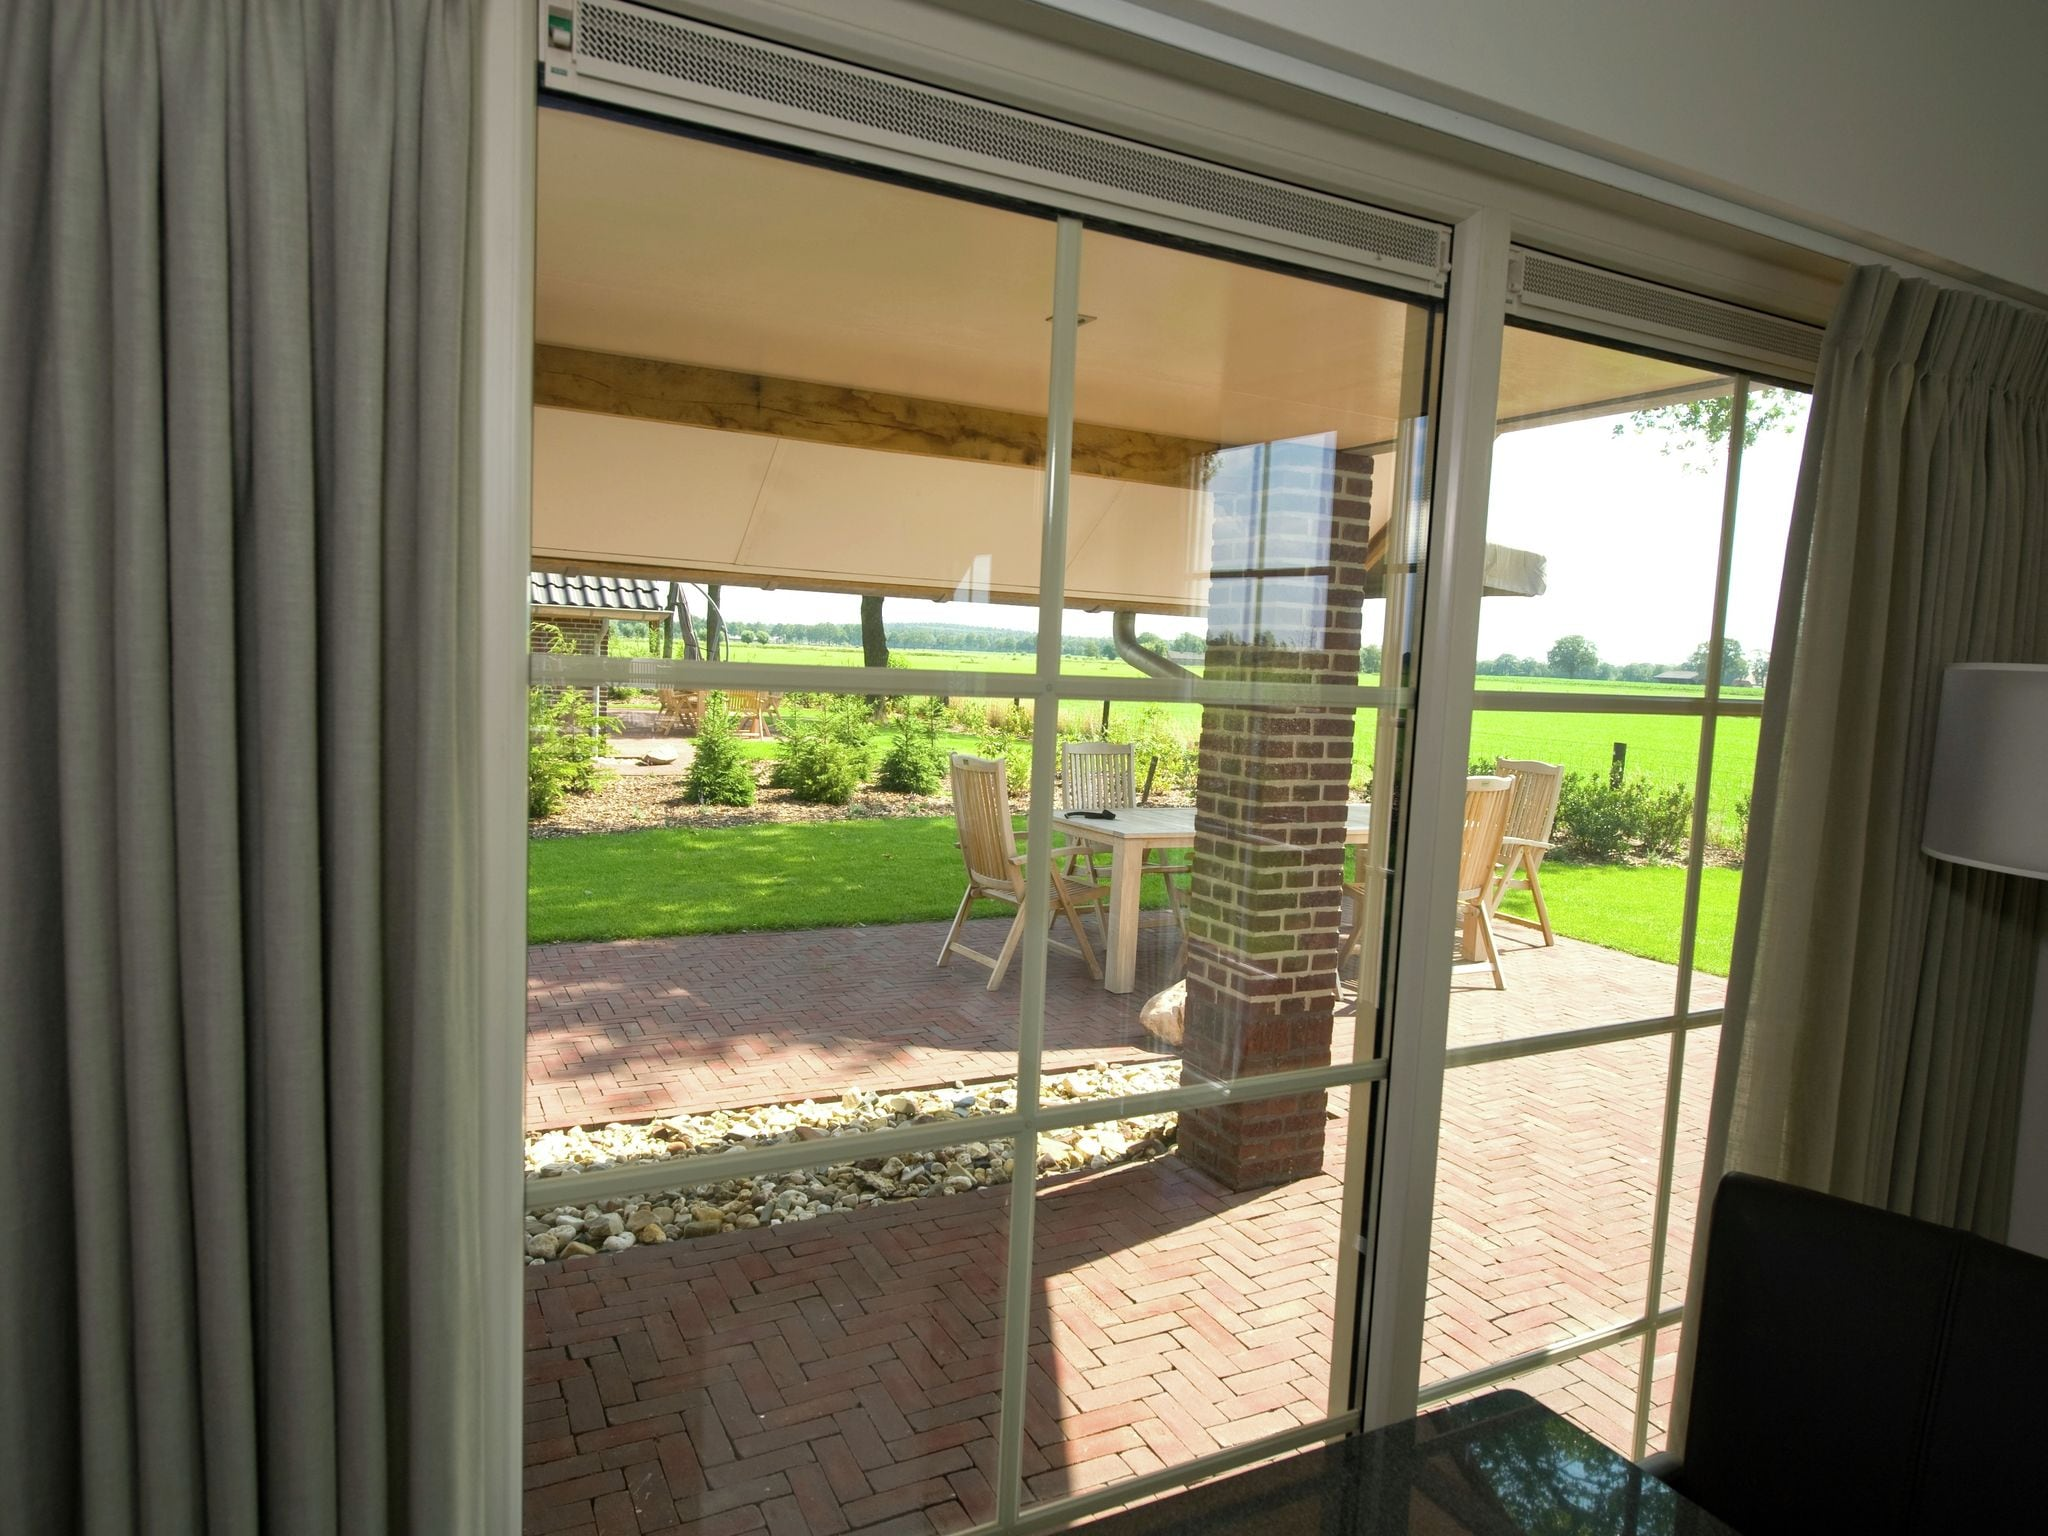 Holland | Overijssel | Holiday home Hof van Salland - Beukelaer XL wellness 6 persoons | all year | TerraceBalcony